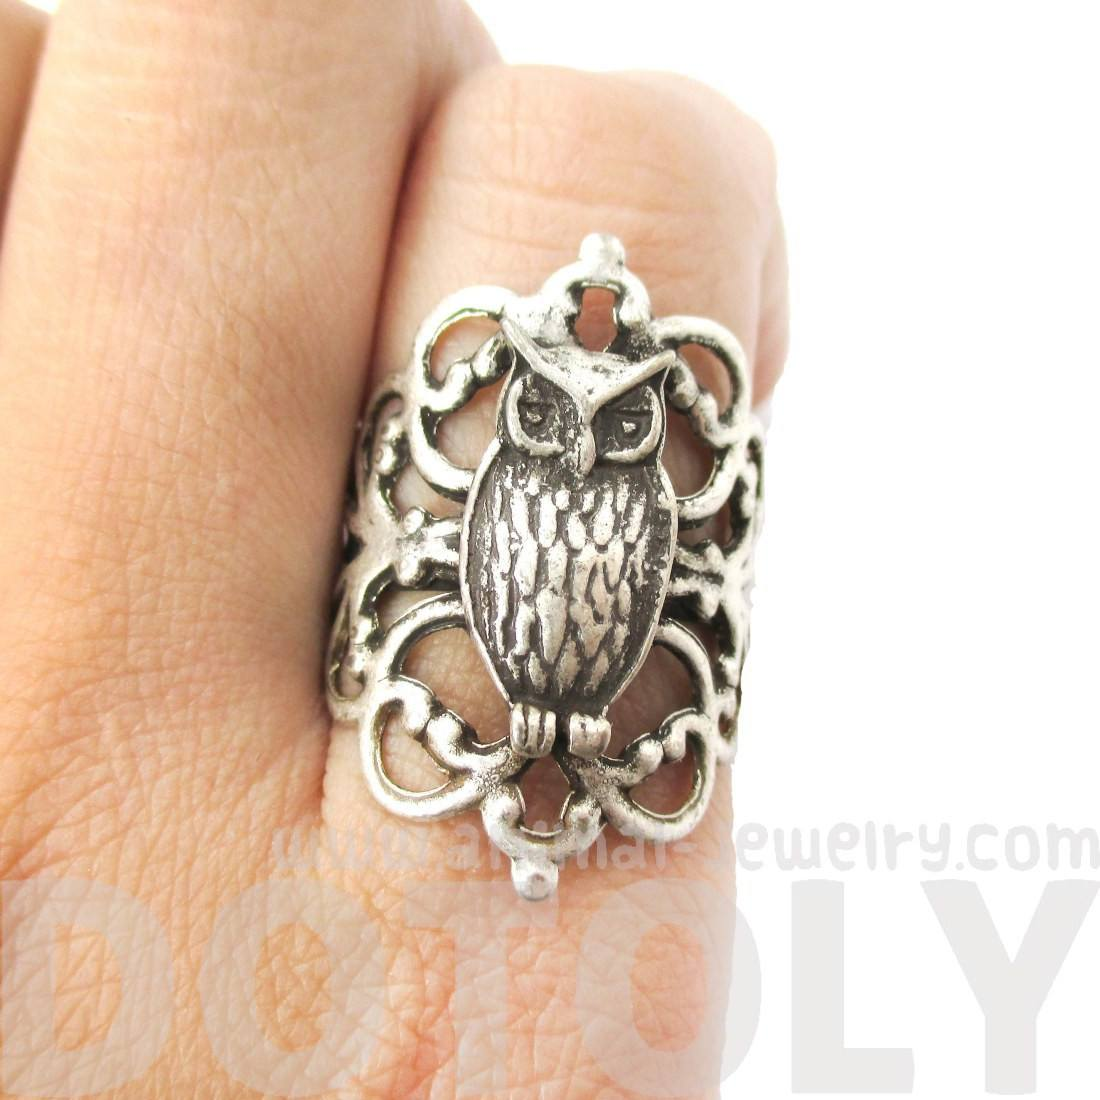 Pretty and Elegant Antique Silver Floral Filigree And Owl Shaped Ring